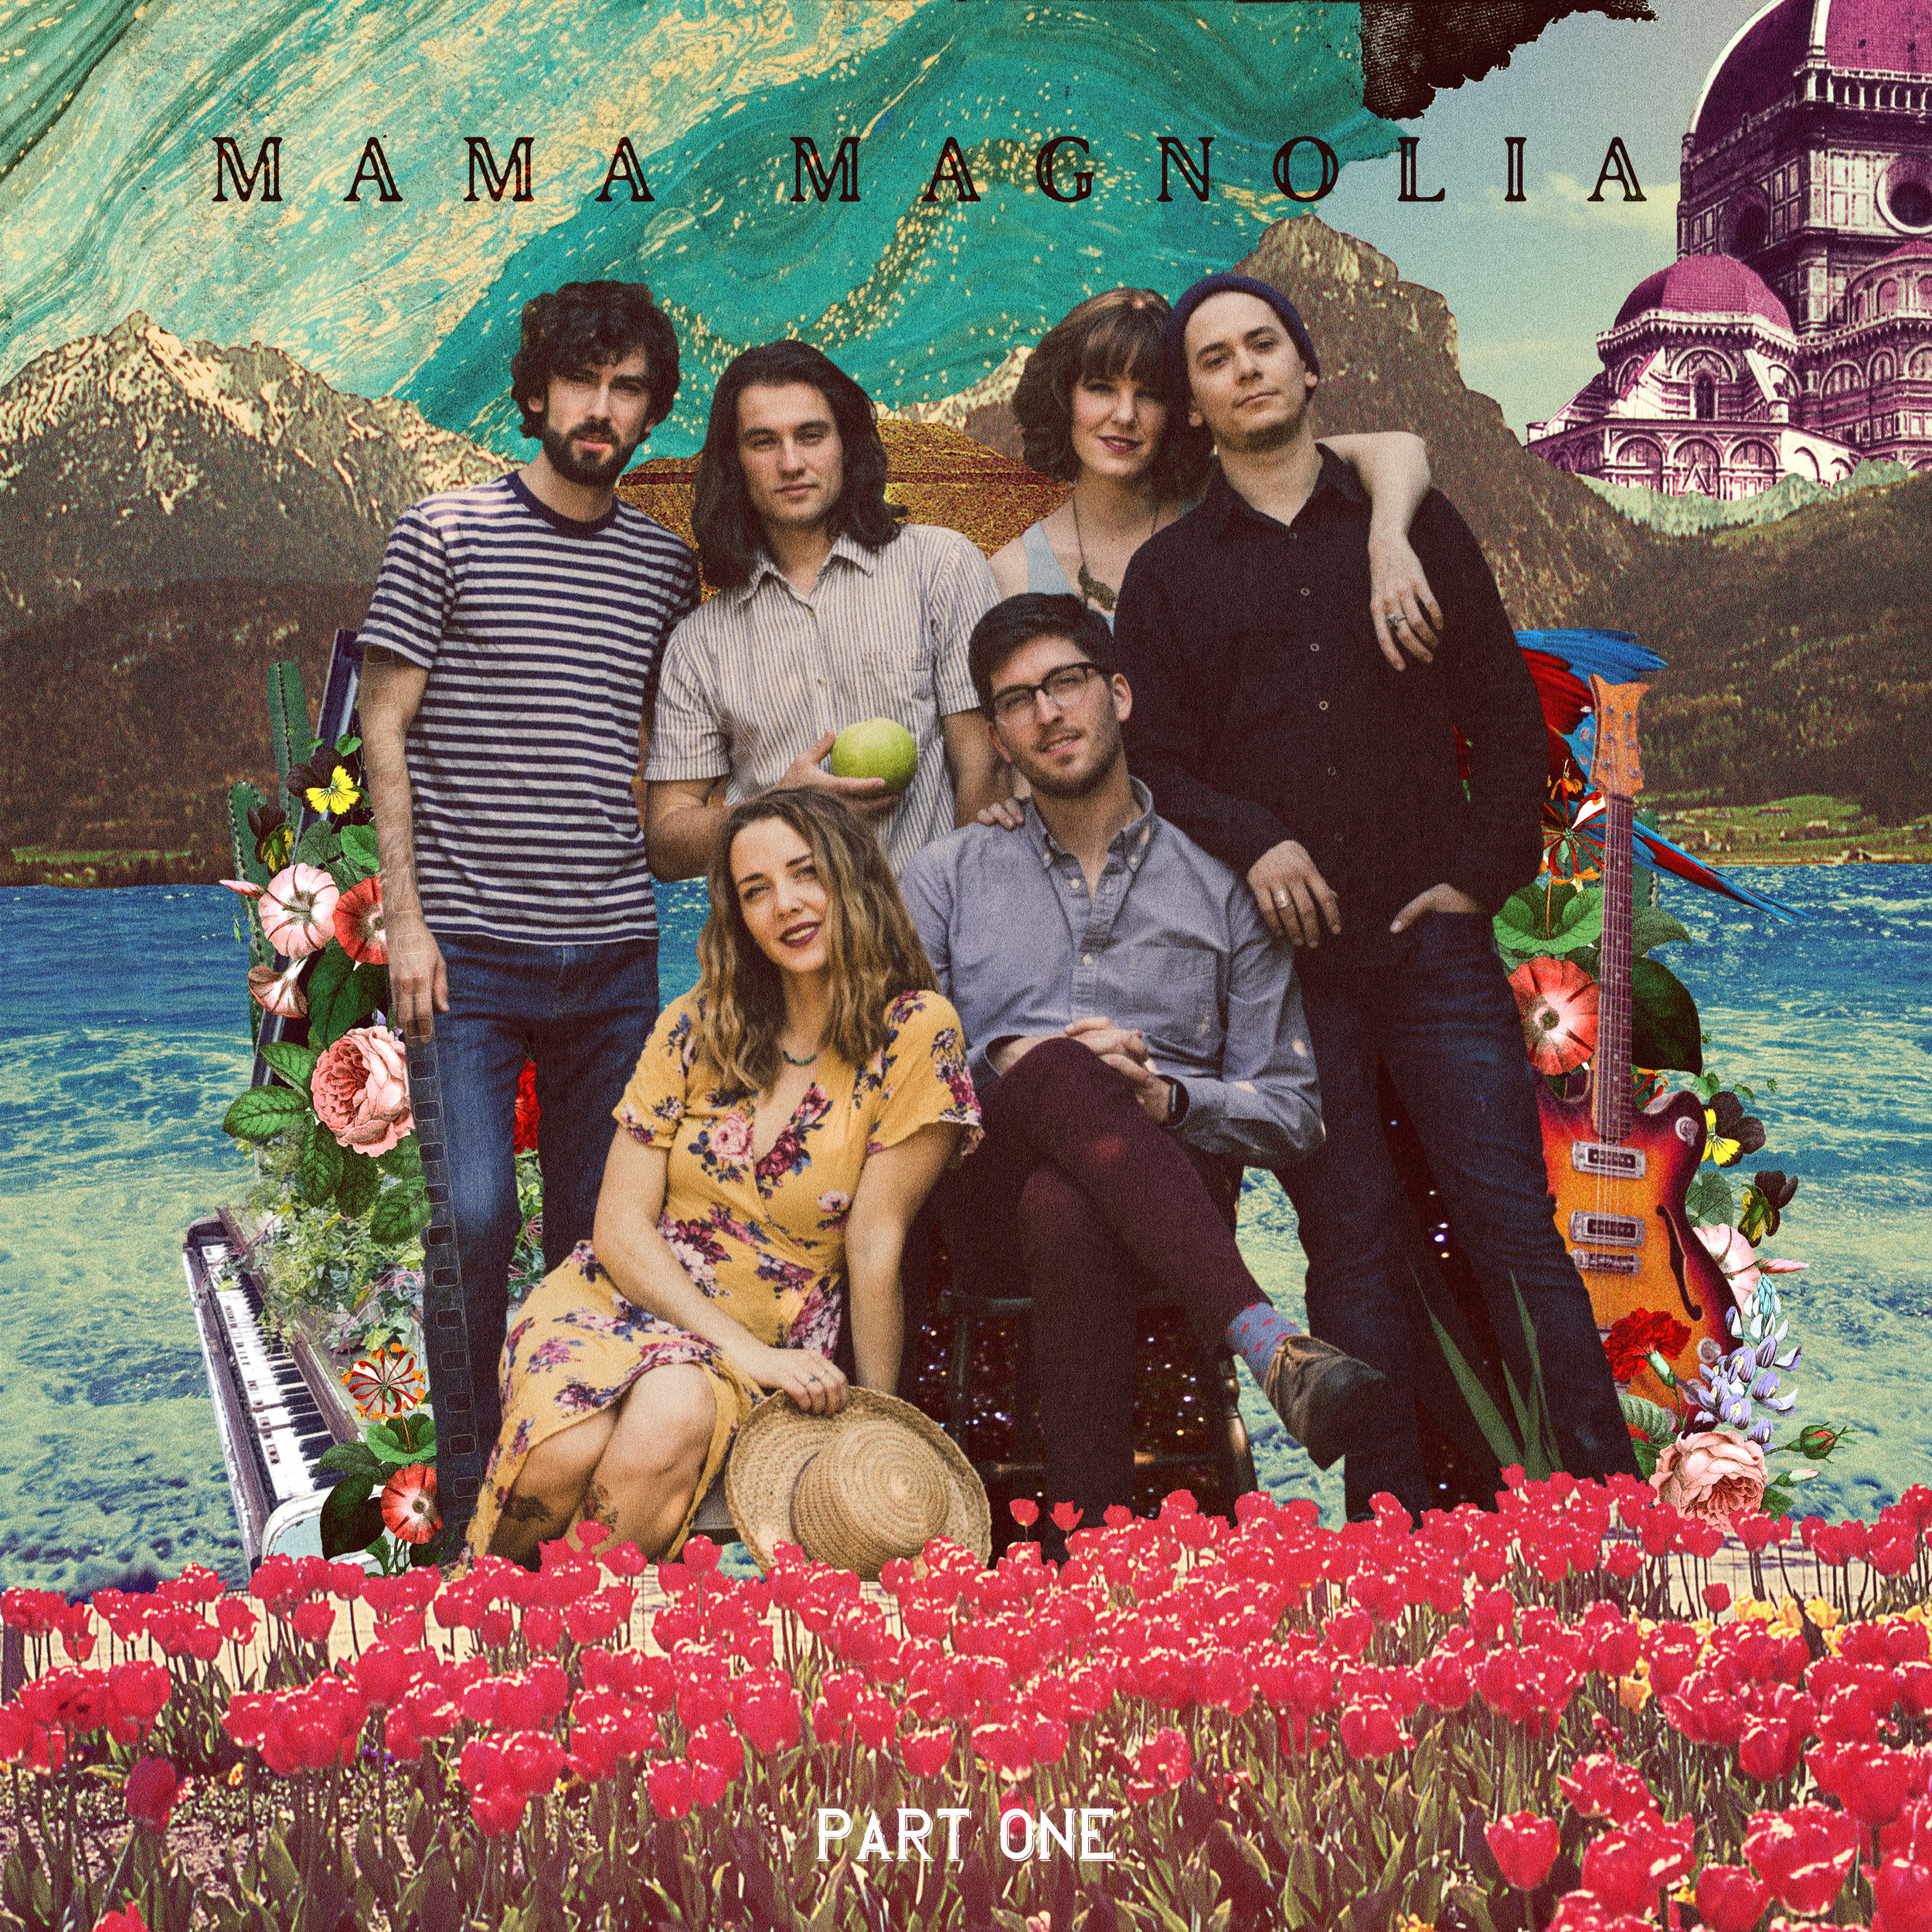 MAMAMAG-cover-3000x3000pt1.jpg